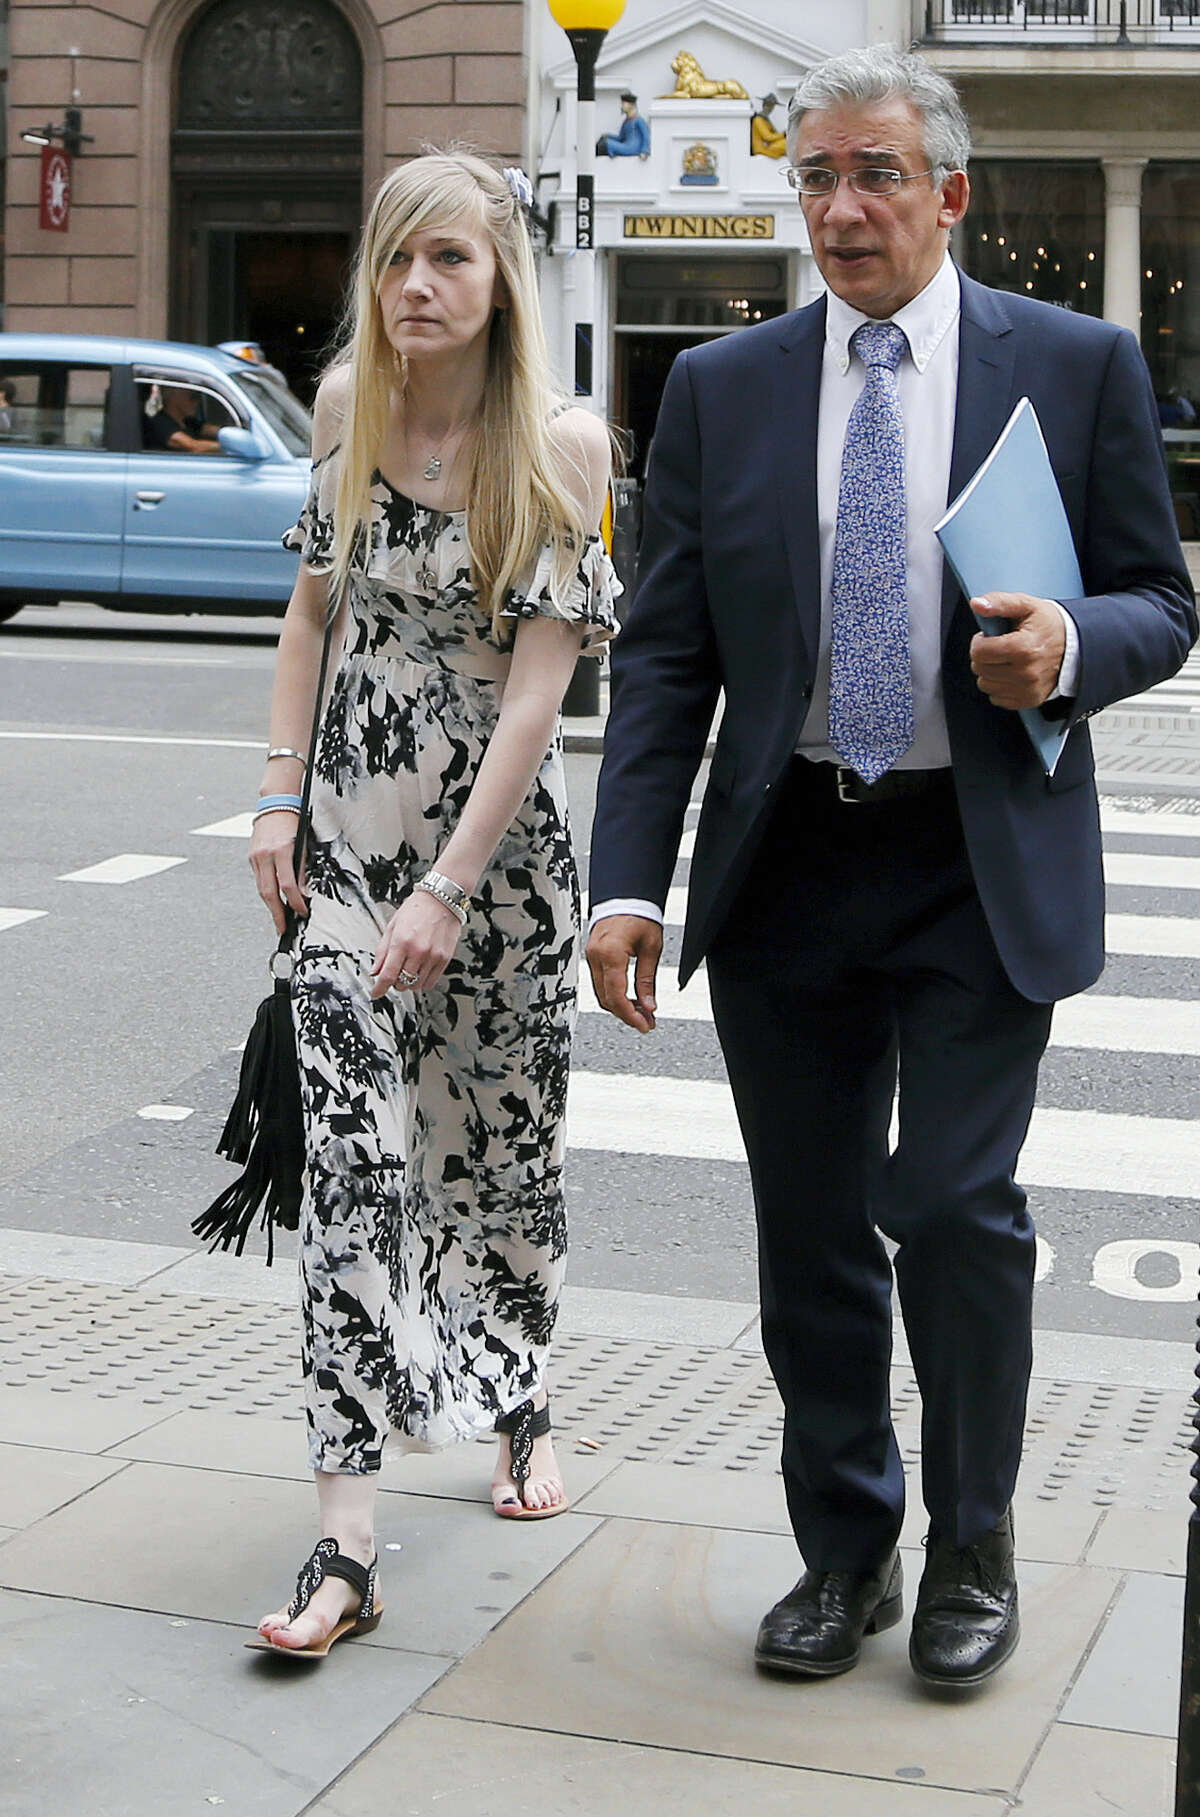 Connie Yates, mother of critically ill baby Charlie Gard arrives at the Royal Court of Justice in London, Tuesday, July 25, 2017. Lawyers for the family of critically ill infant Charlie Gard and the hospital treating him were returning to court for a hearing Tuesday, a day after the baby's parents said they were dropping their long legal battle to get him experimental treatment. The subject of Tuesday's hearing at the High Court in London was not immediately clear.